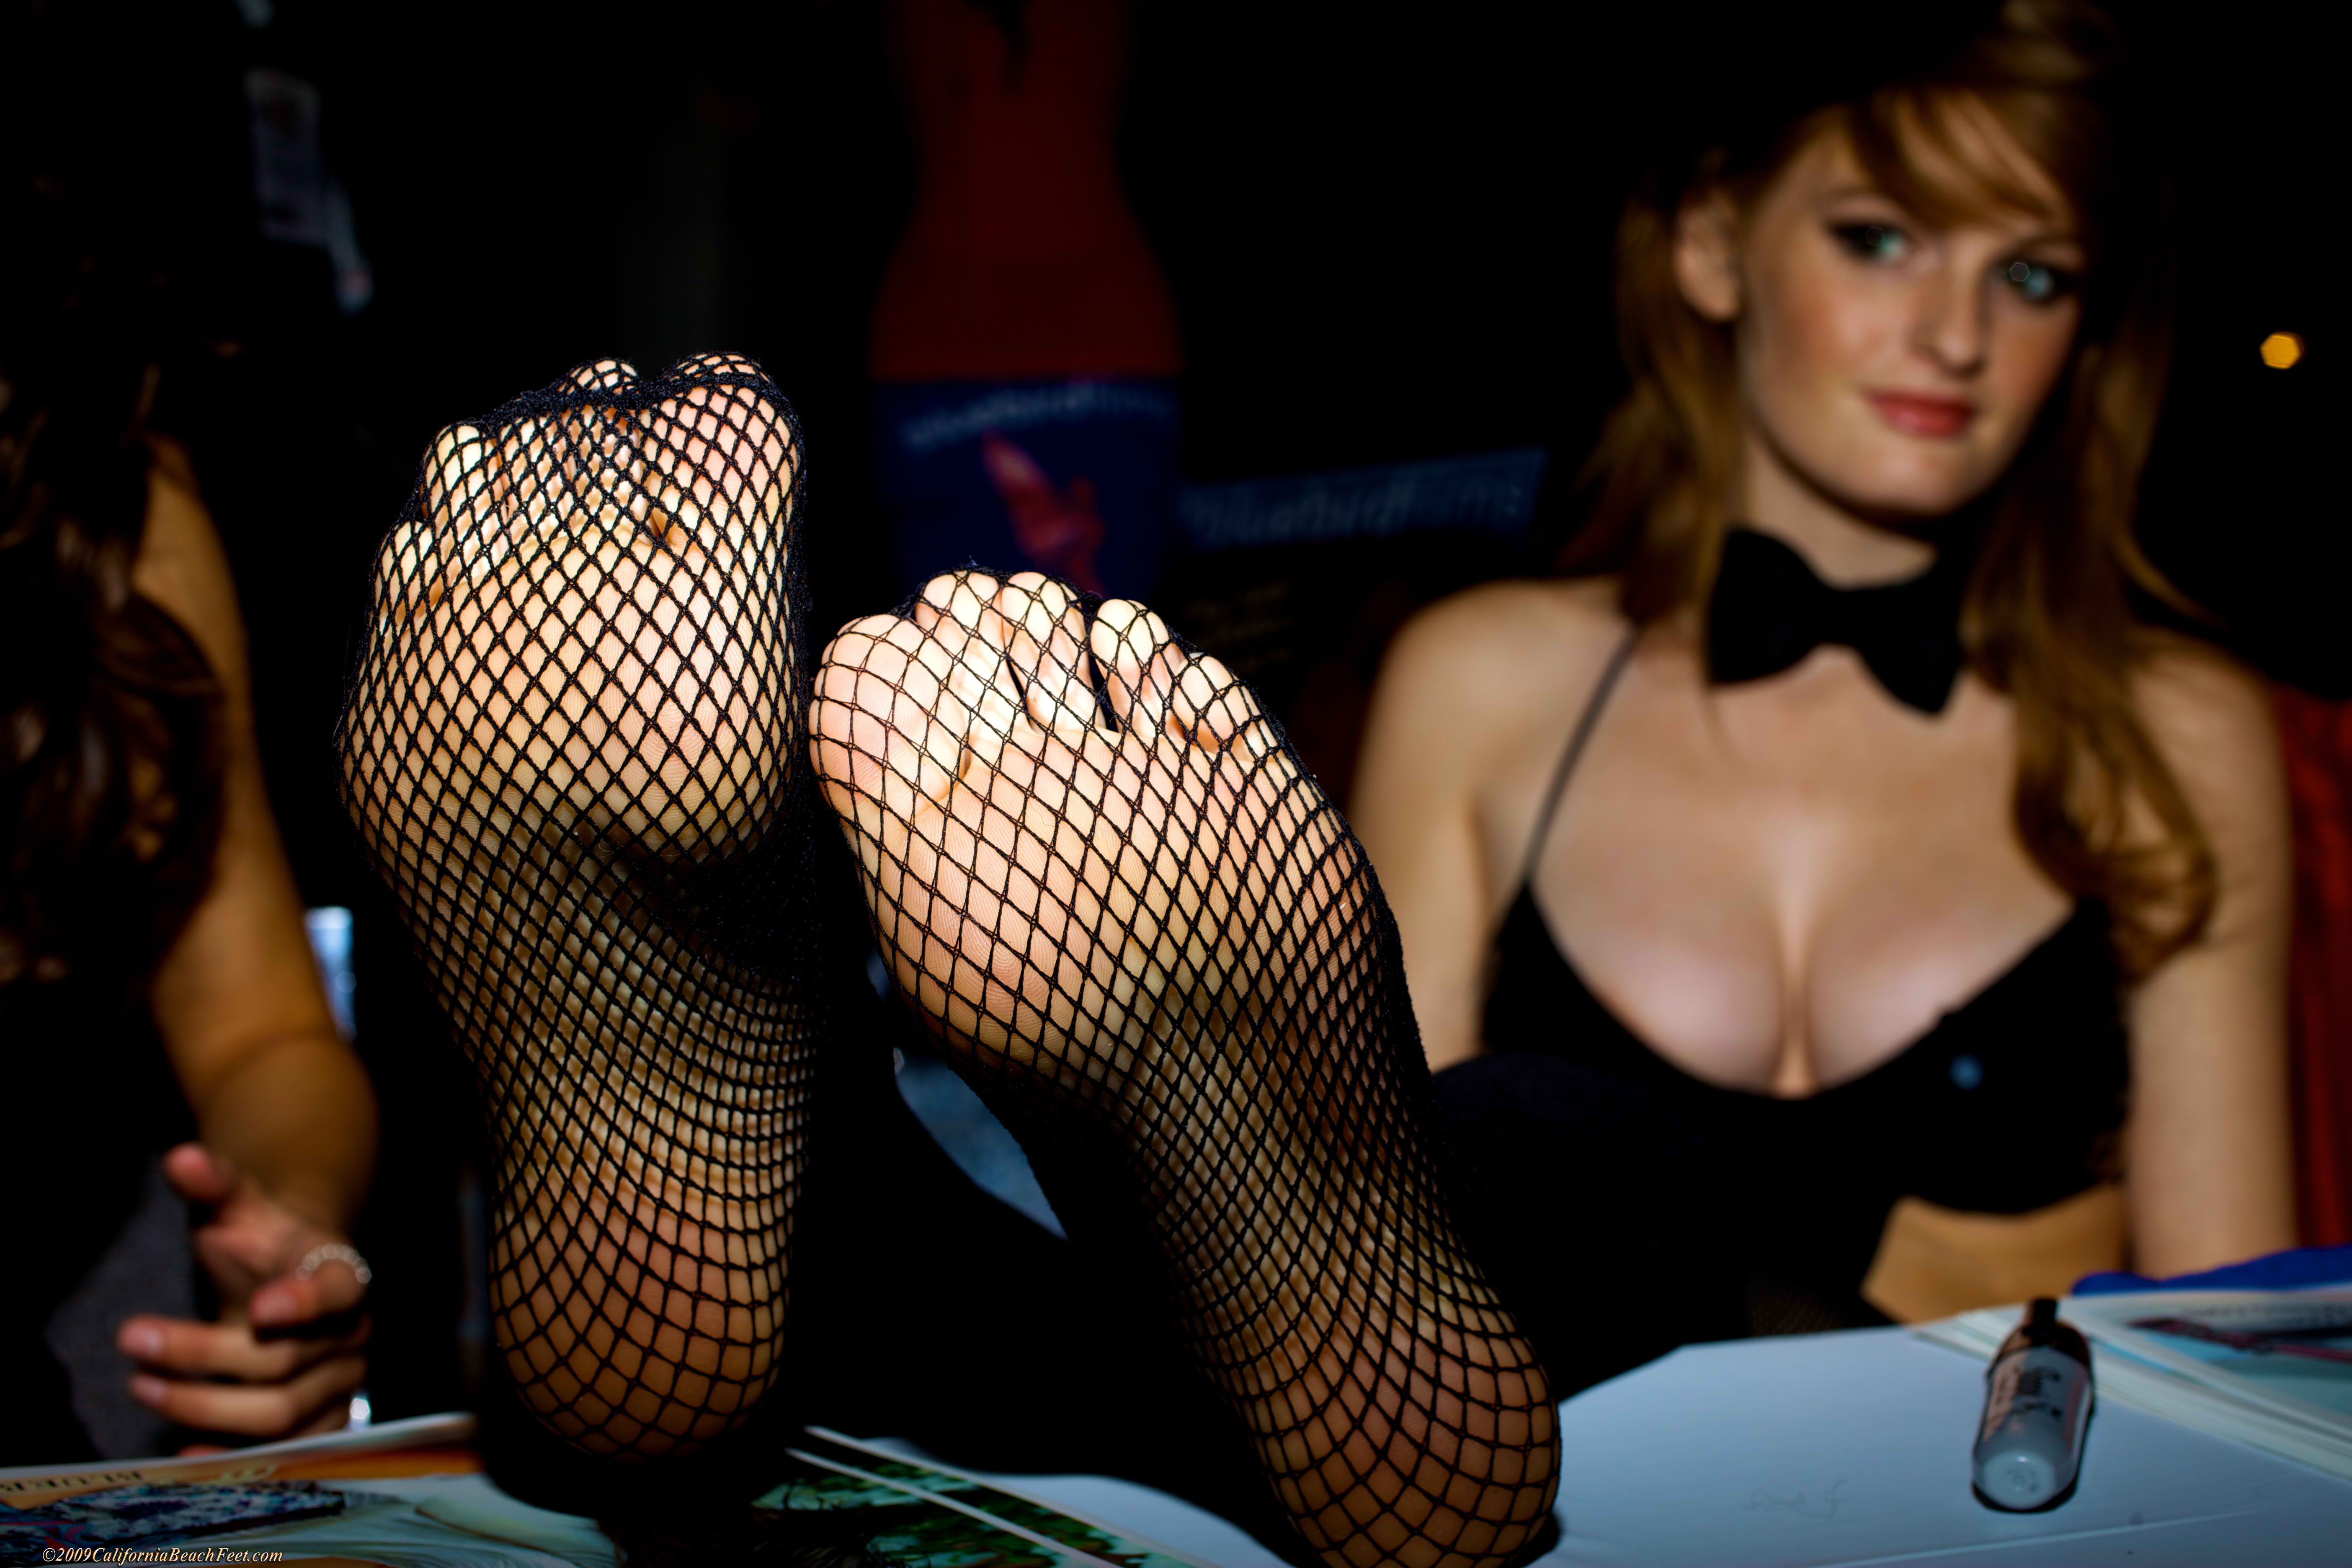 Leggy babe in stockings Faye Reagan gets rid of her provocative outfit № 160327 бесплатно